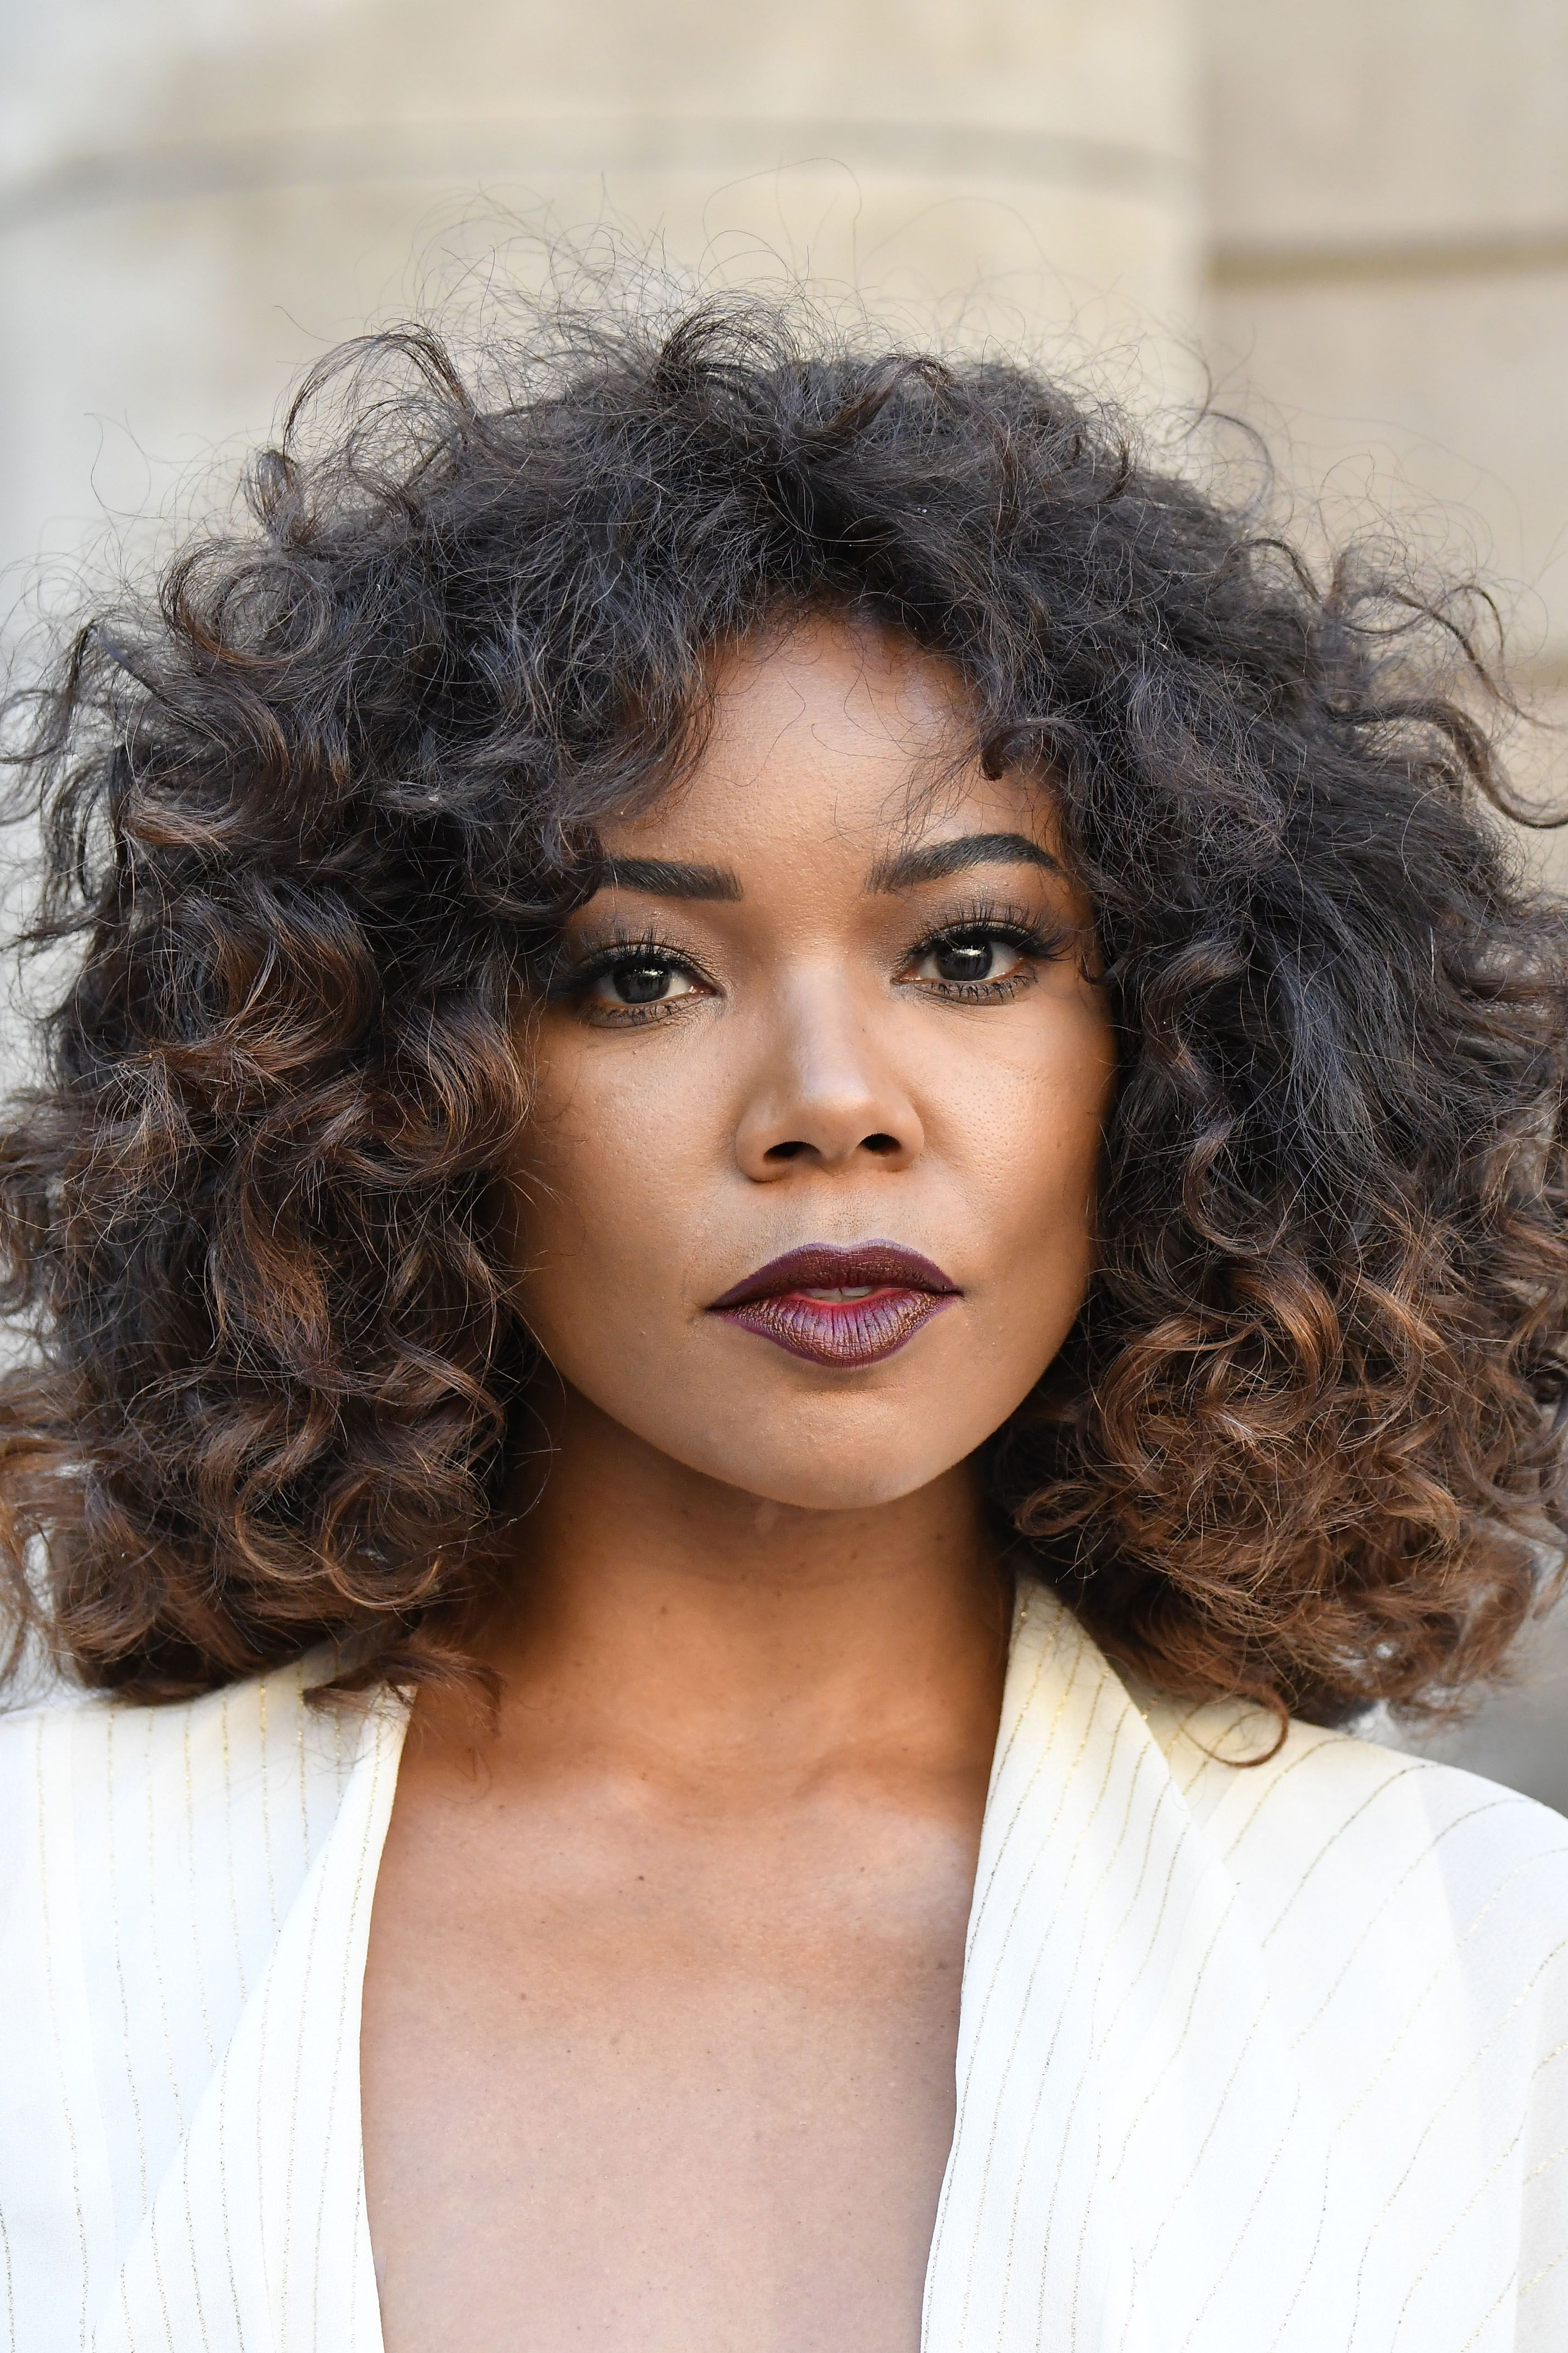 13 Times Gabrielle Union Was 4c Hair Goals In 2018 | Naturally Curly With Regard To Natural Textured Curly Hairstyles (View 4 of 20)